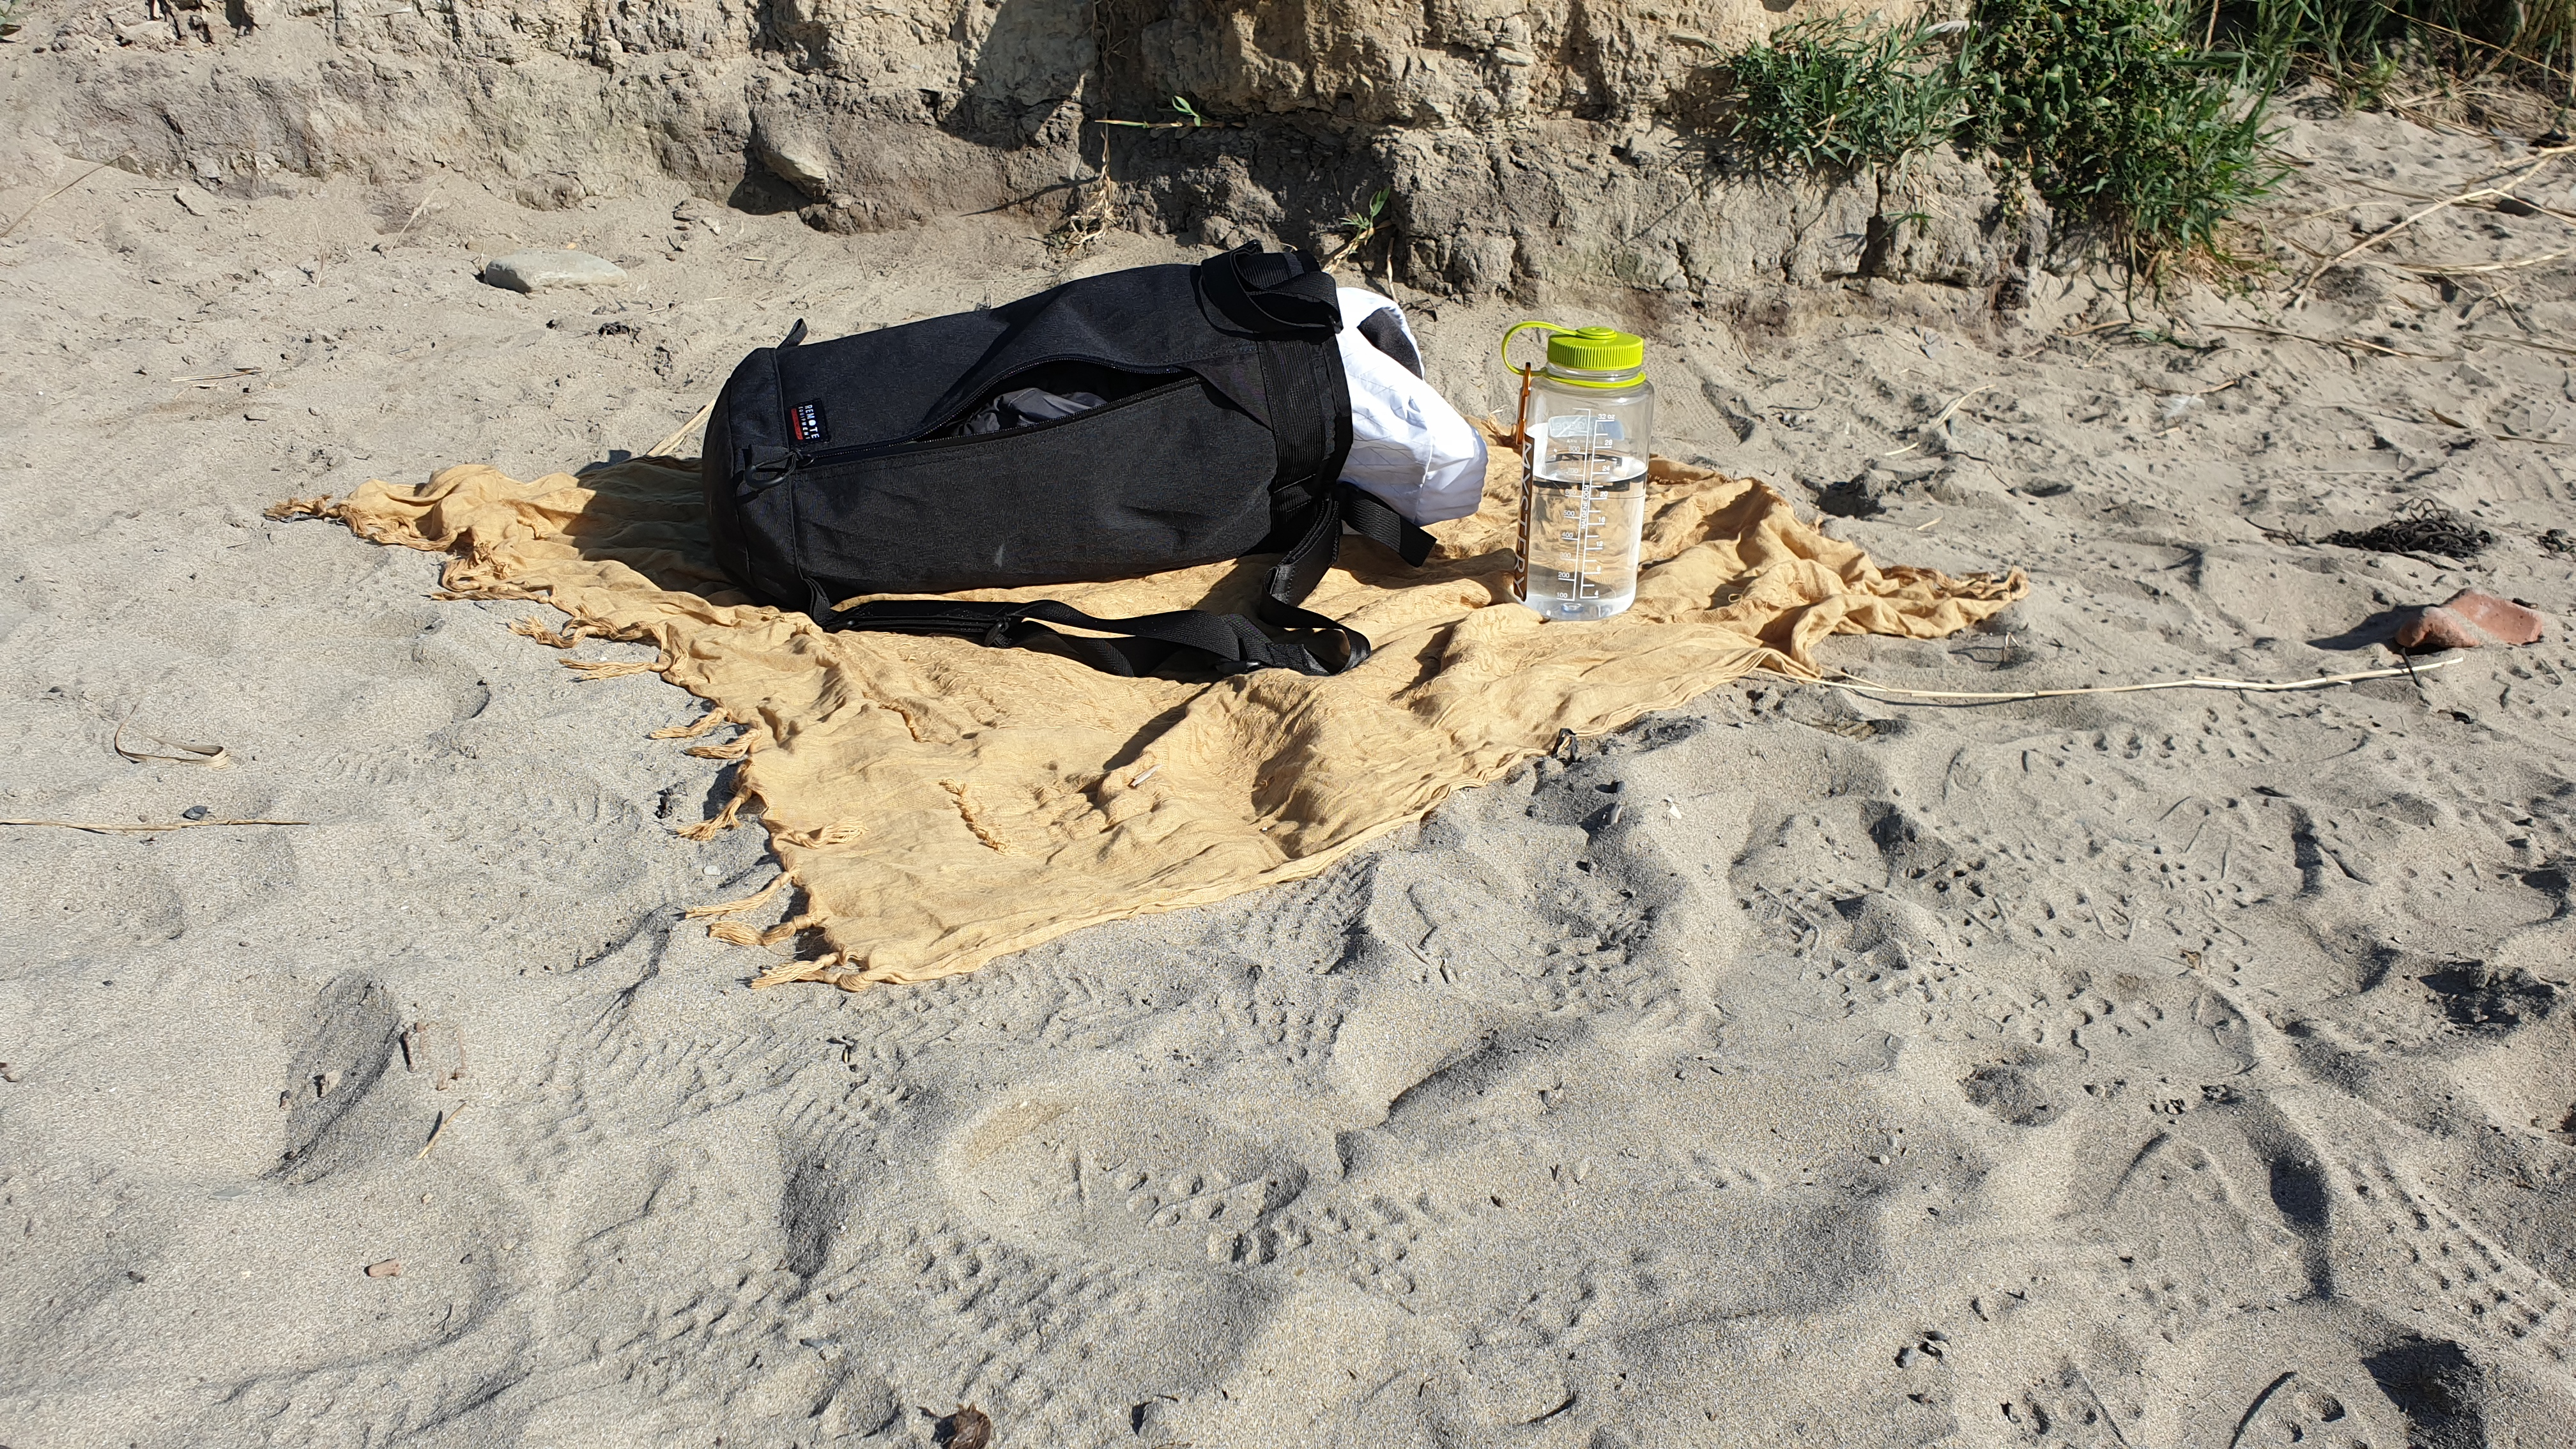 Remote Equipment Bravo 18 travel bag review on beach with shemagh nalgene bottle